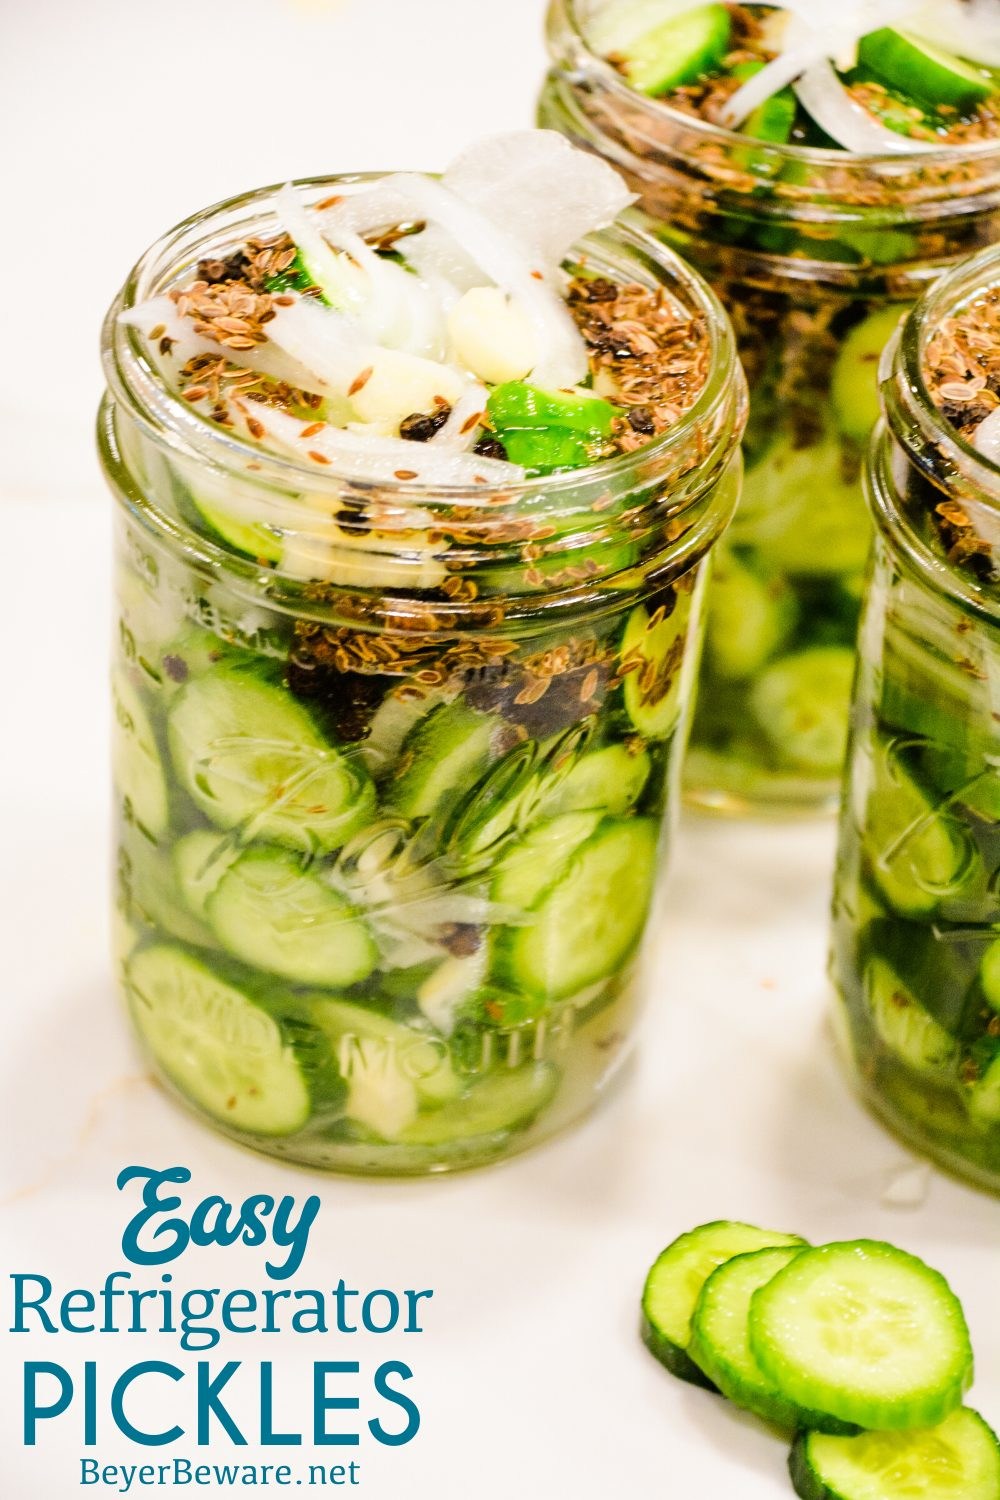 These easy refrigerator dill pickles are quick to make refrigerator pickle recipe made with cucumbers, onions, garlic, and lots of seasonings for the ultimate homemade pickles.